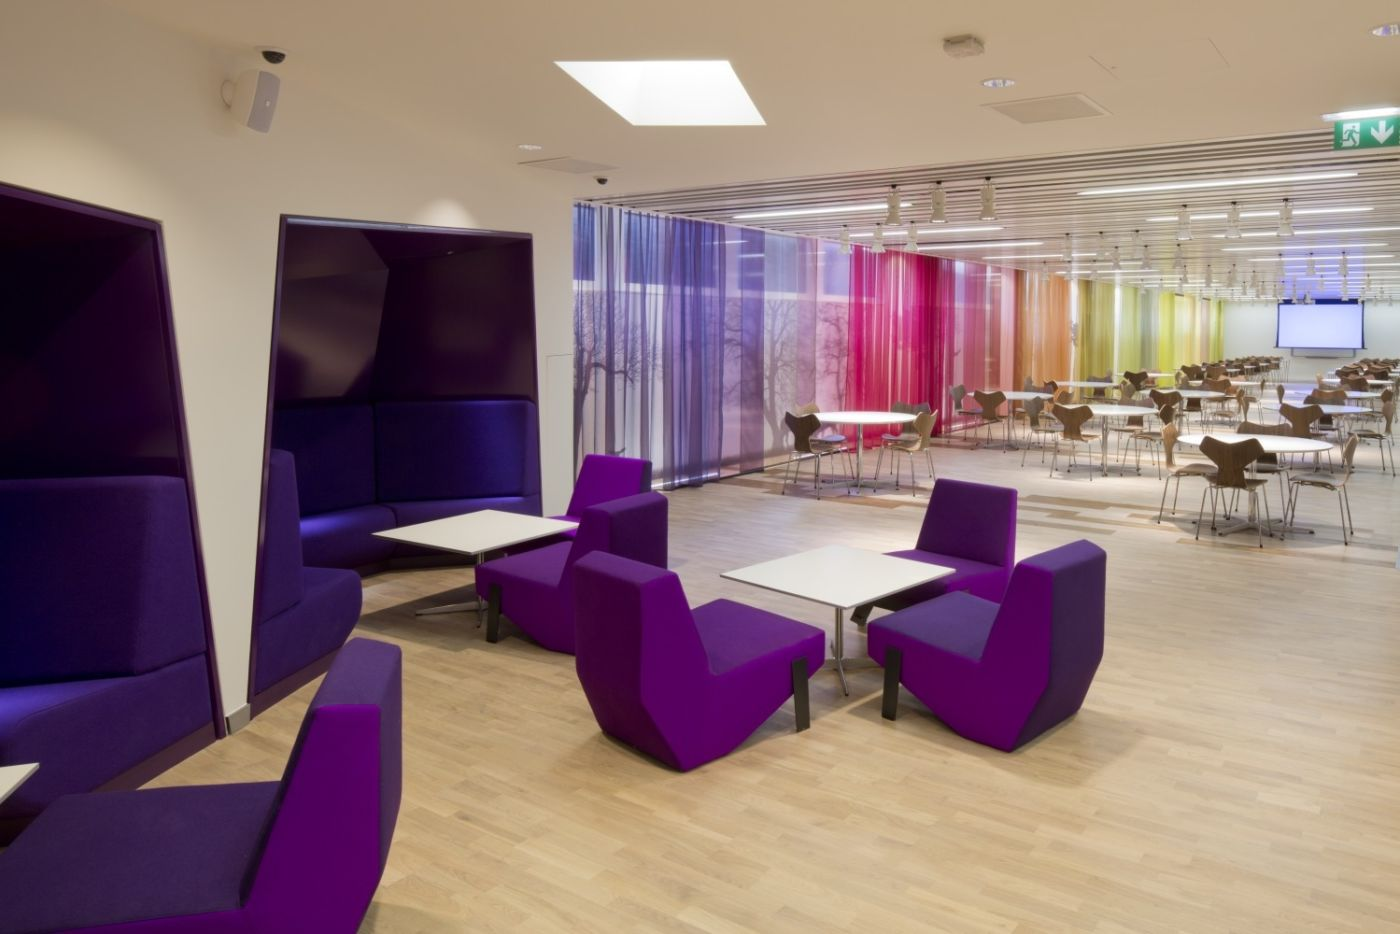 Purple booth and modular seating in relaxed breakout area